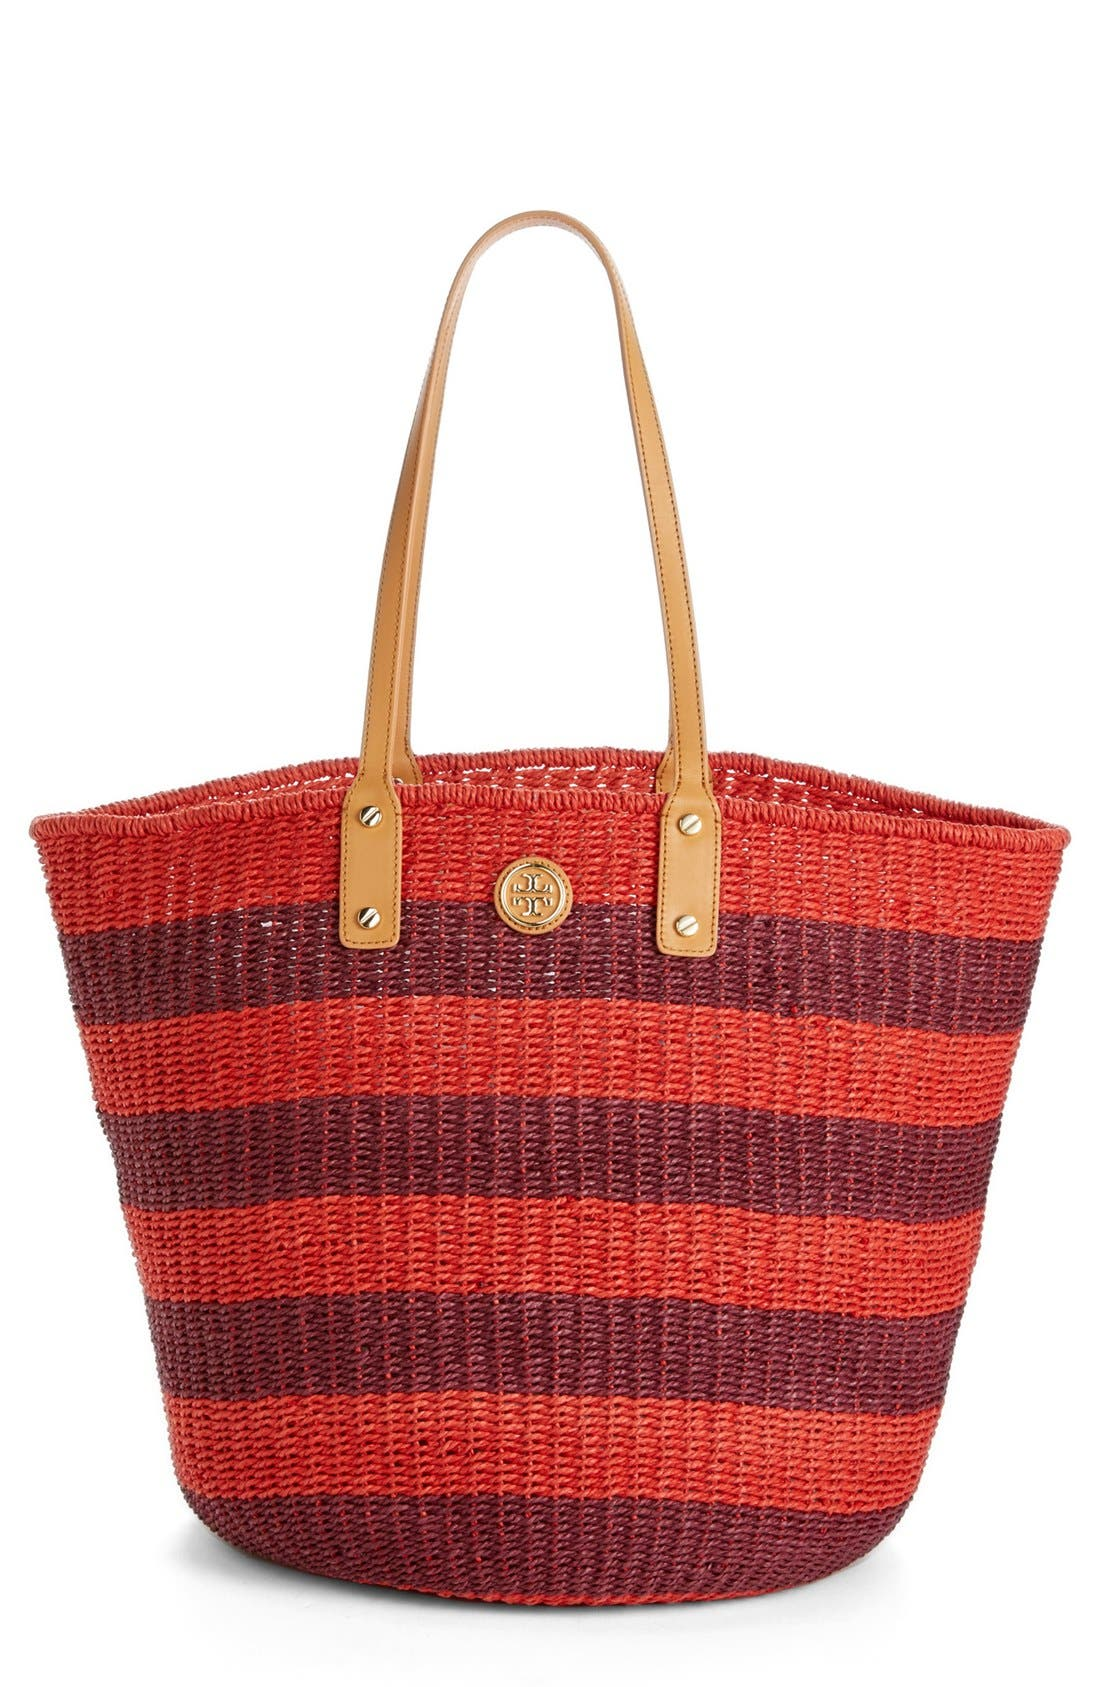 Alternate Image 1 Selected - Tory Burch 'Tyler' Straw Tote